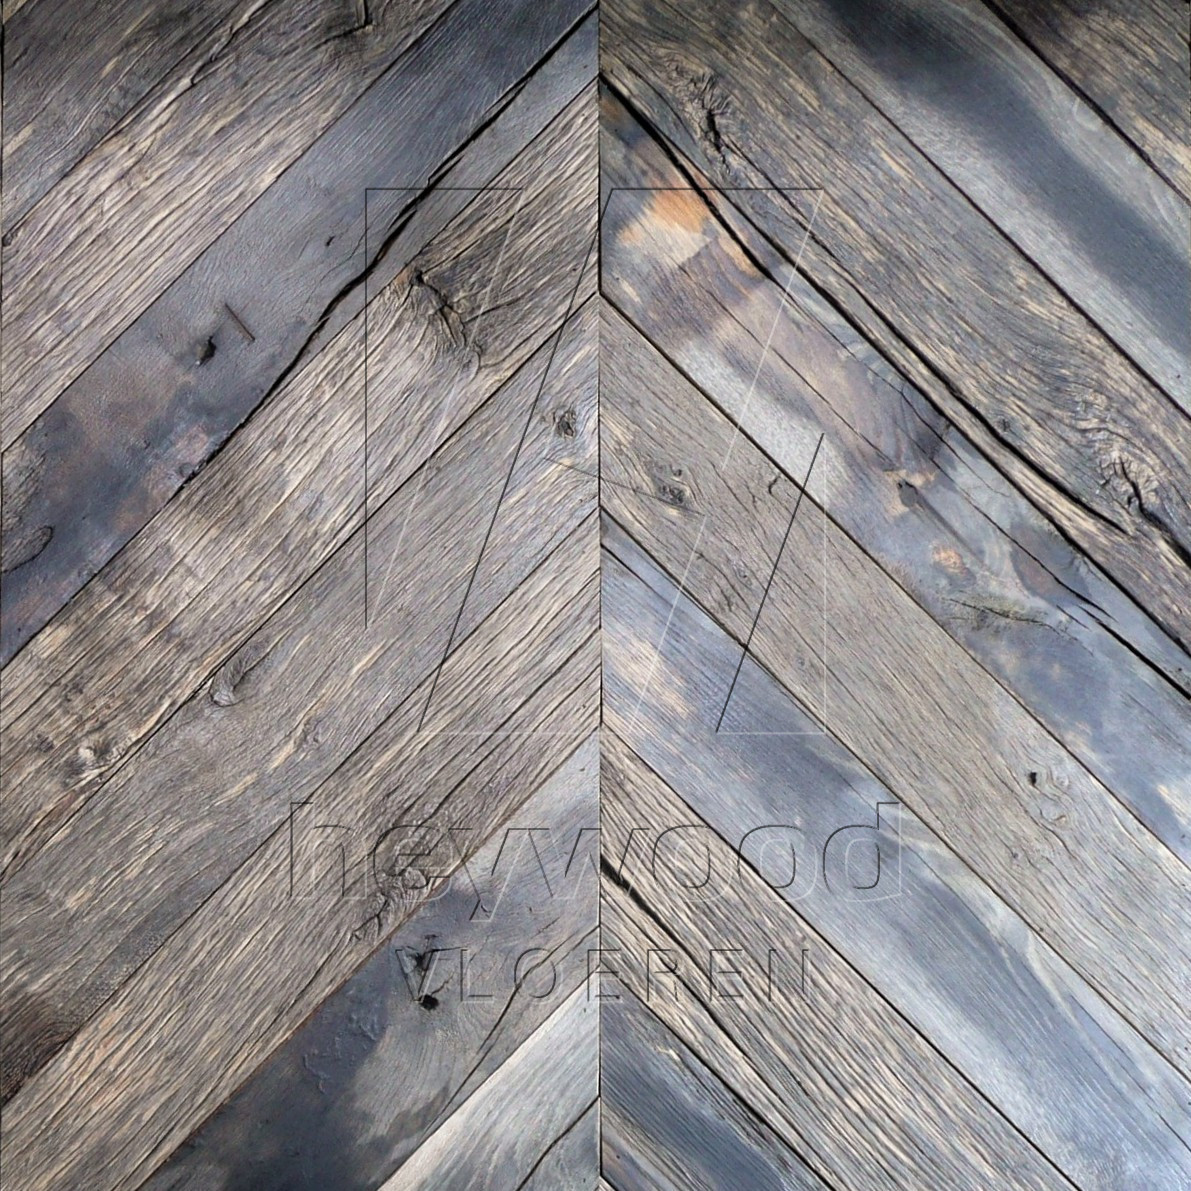 Bordeaux Chevron (80 years old Reclaimed Oak, Outside) in Pattern & Panels (Outsides / Insides) of Old Reclaimed Wood